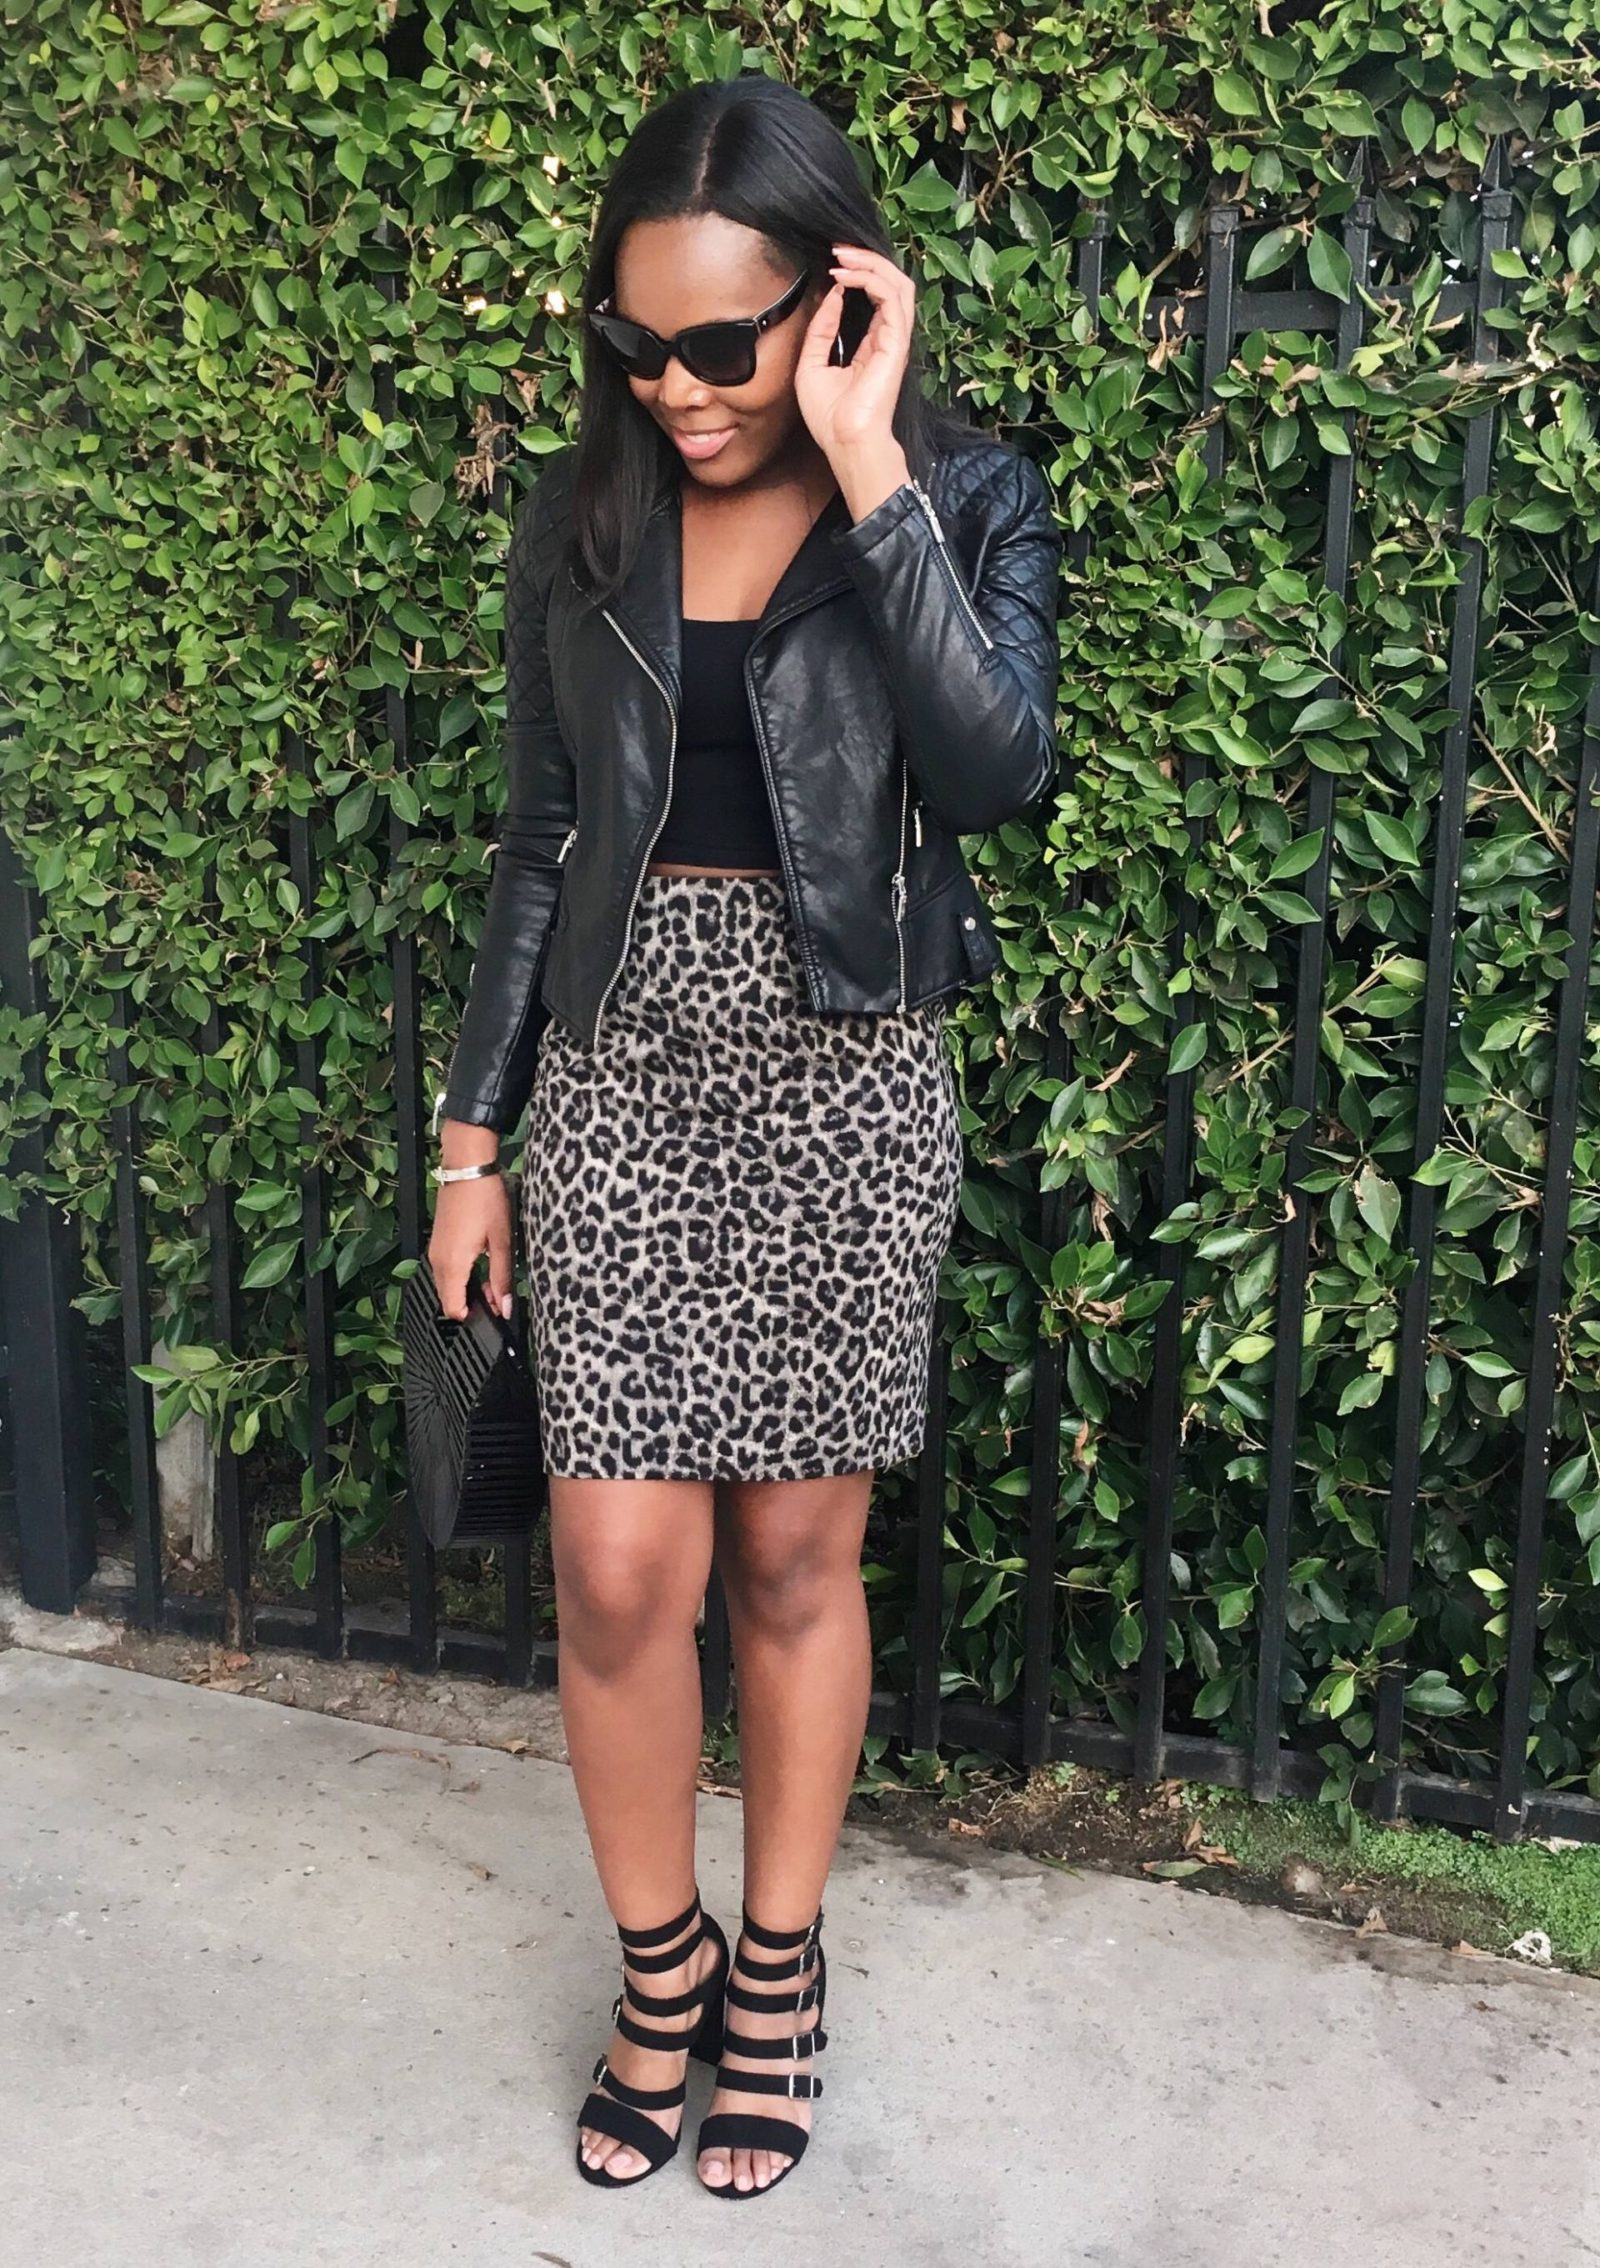 Leopard Print Skirt Outfit - Le Fab Chic